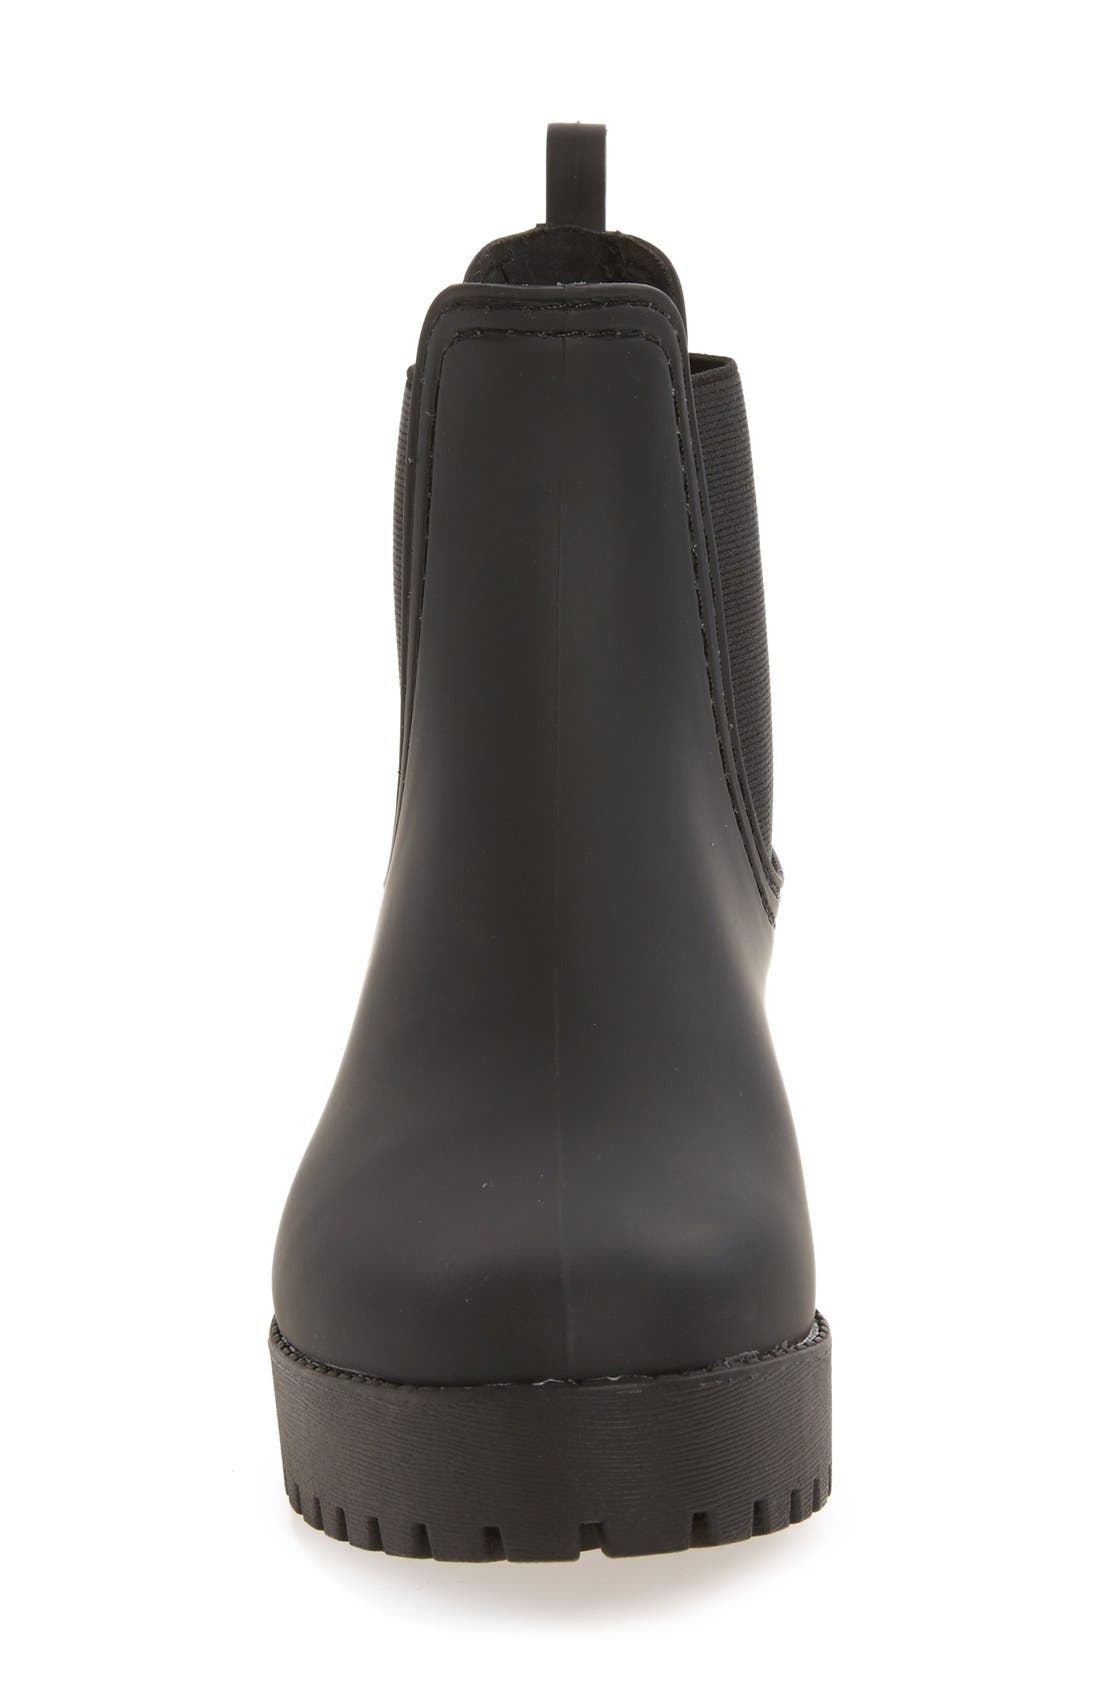 Cloudy Waterproof Chelsea Rain Boot,                             Alternate thumbnail 4, color,                             BLACK MATTE BLACK